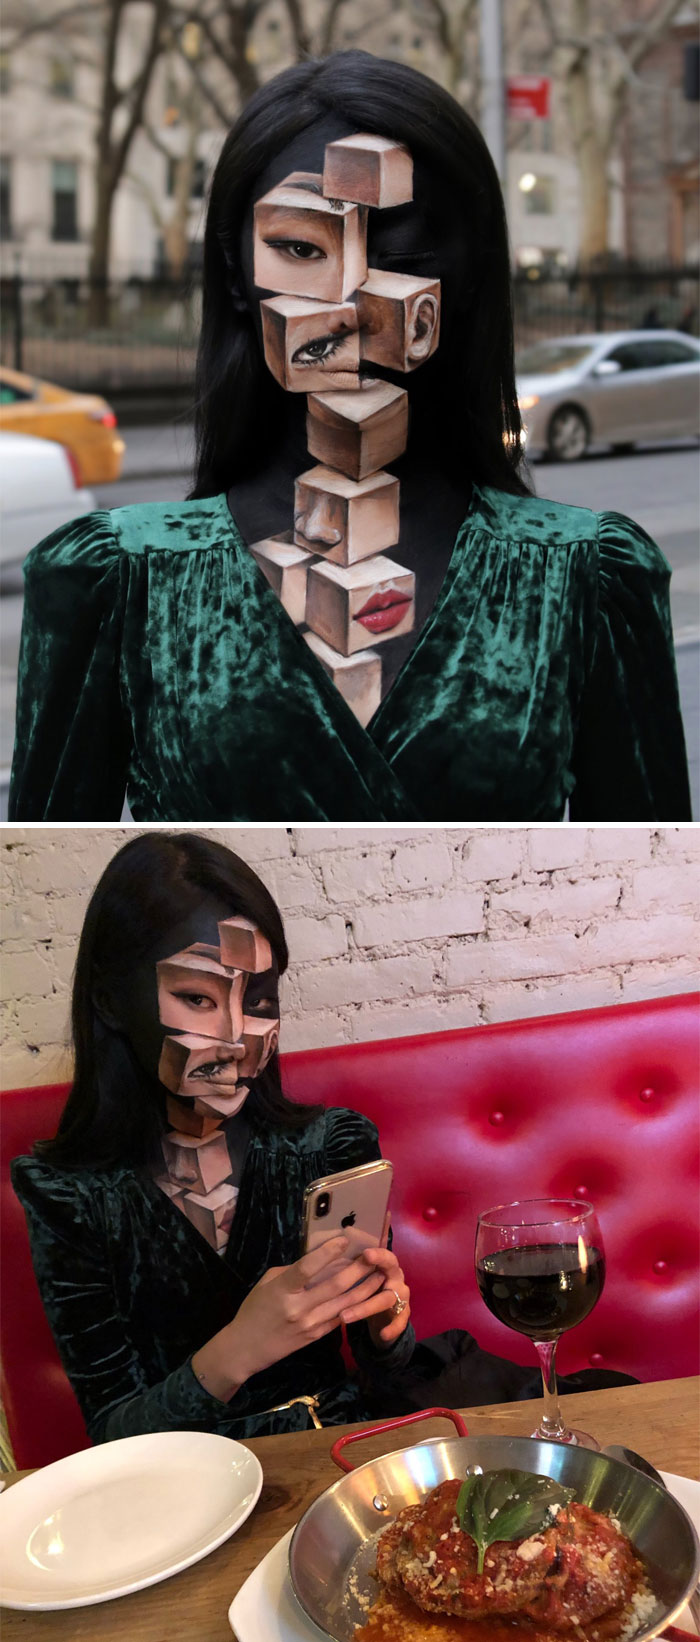 Dain Yoon Optical Illusion Makeup Face with Twisted Blocks